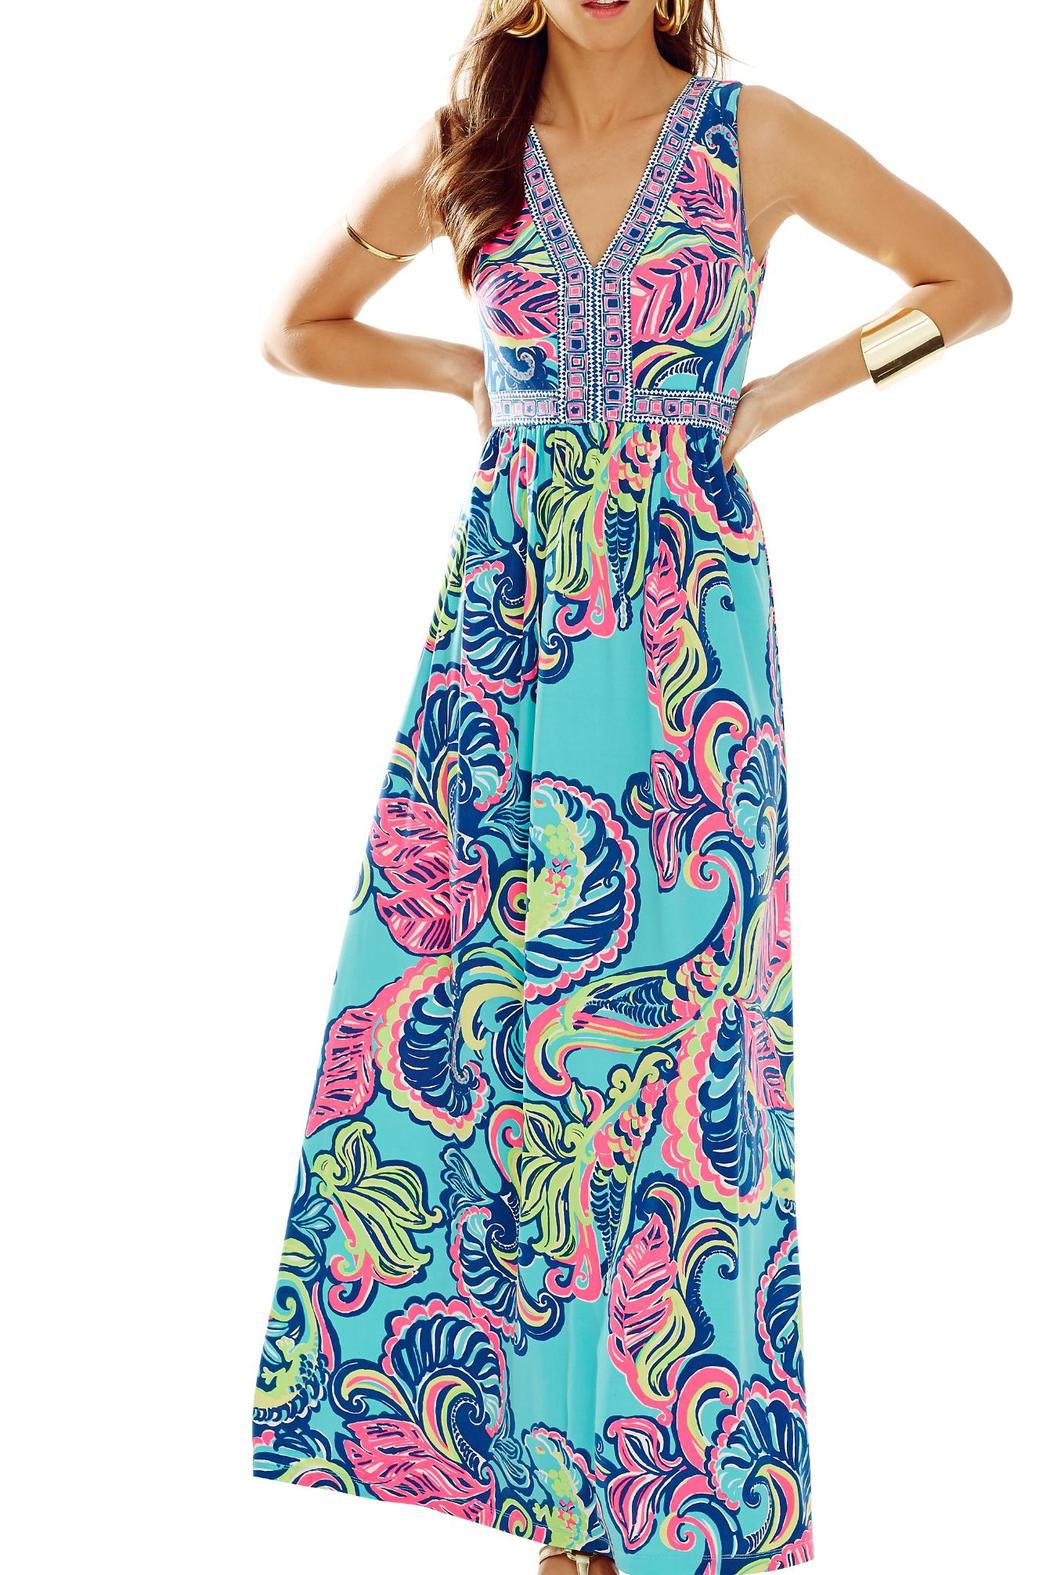 Lilly pulitzer maxi dress blue